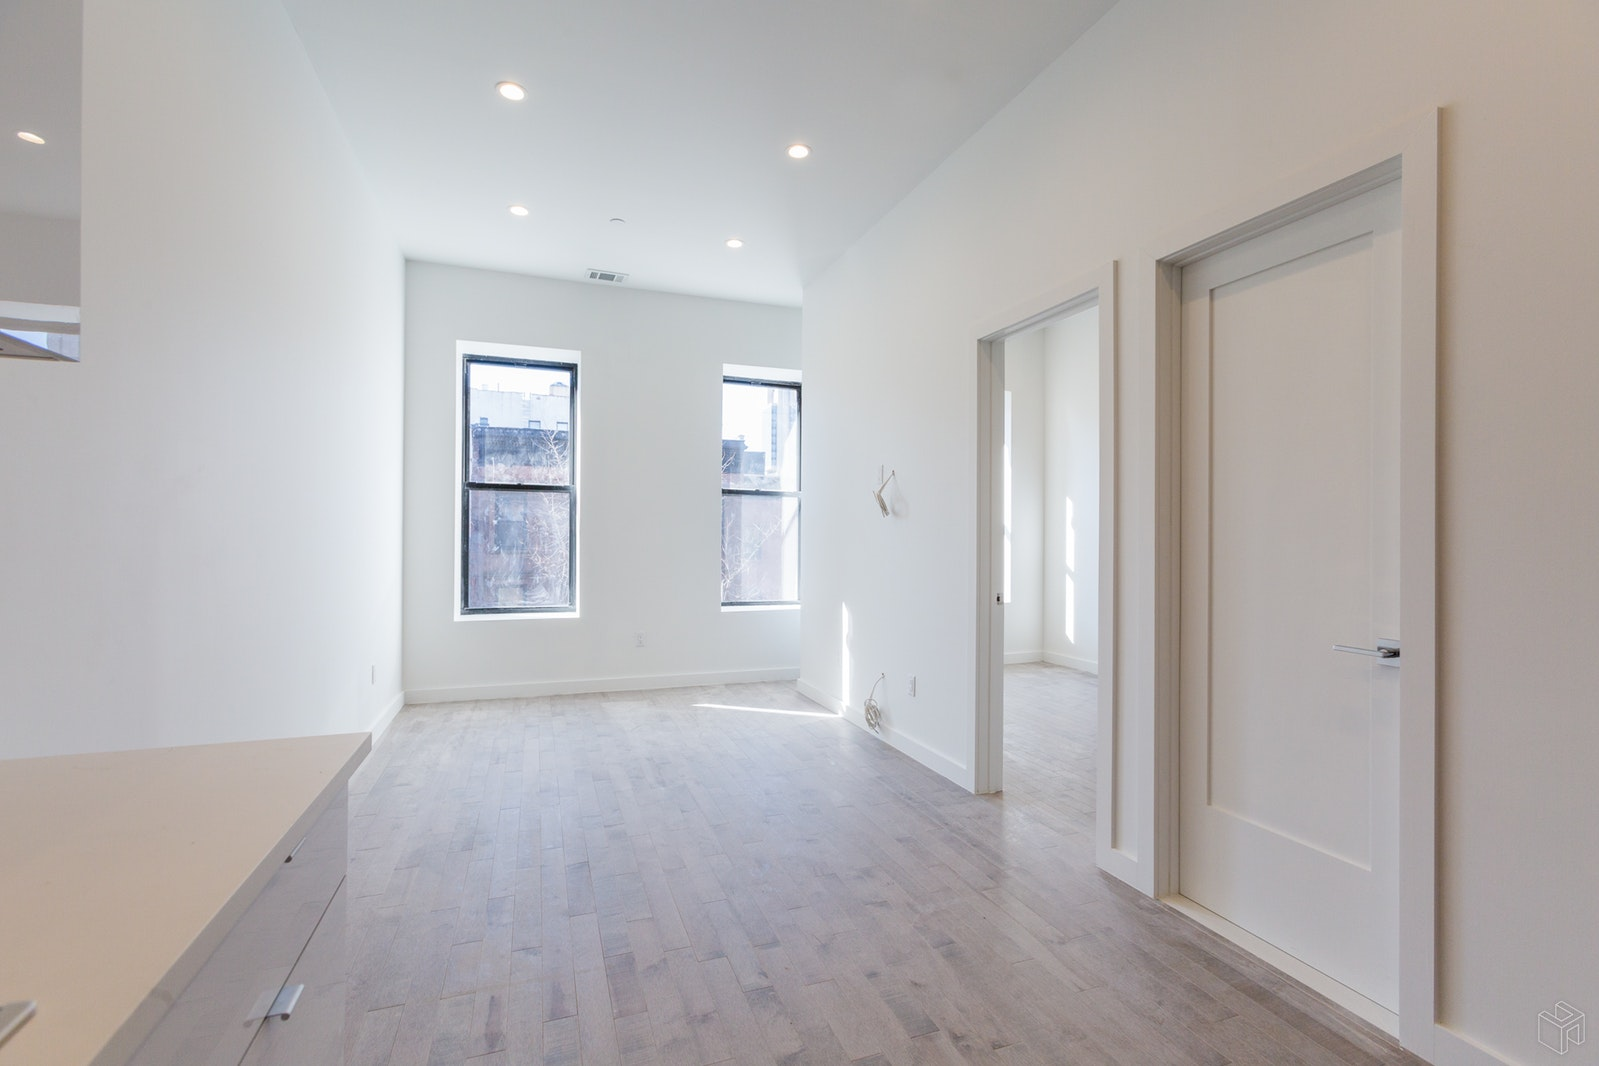 111 West 130th Street 2f, Upper Manhattan, NYC, 10027, $2,400, Rented Property, Halstead Real Estate, Photo 4